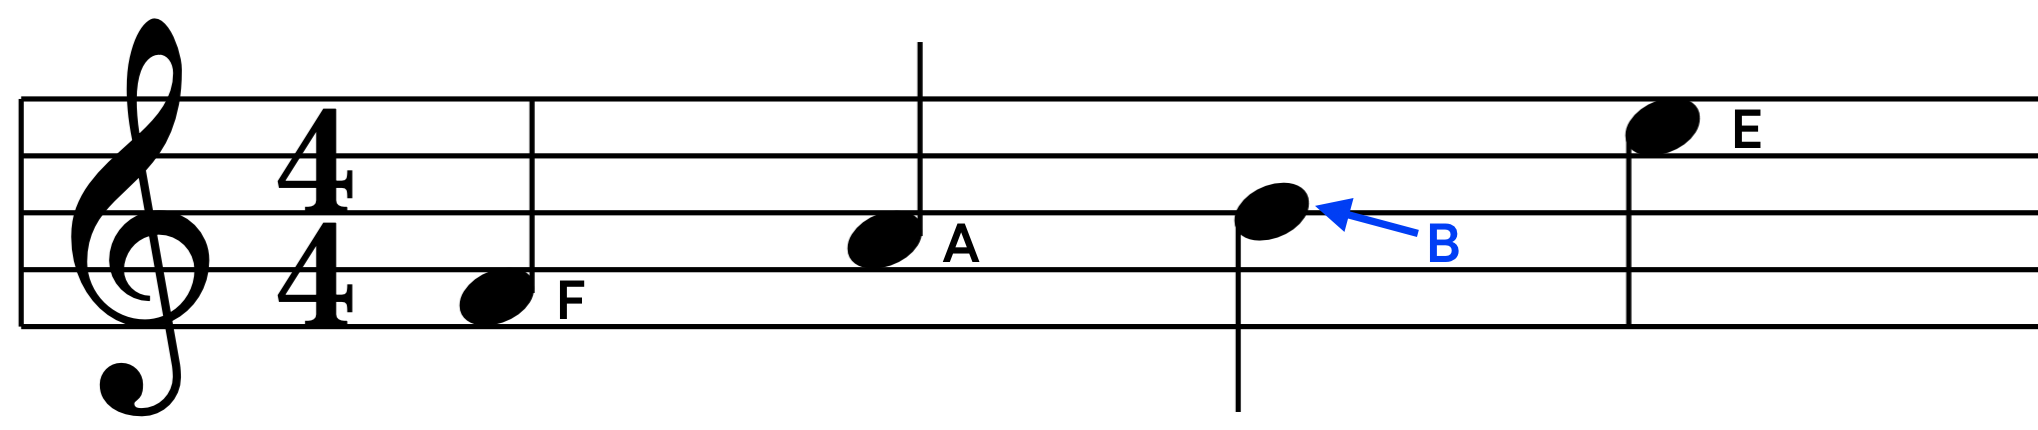 reading-sheet-music-cheat-codes-in-post-01